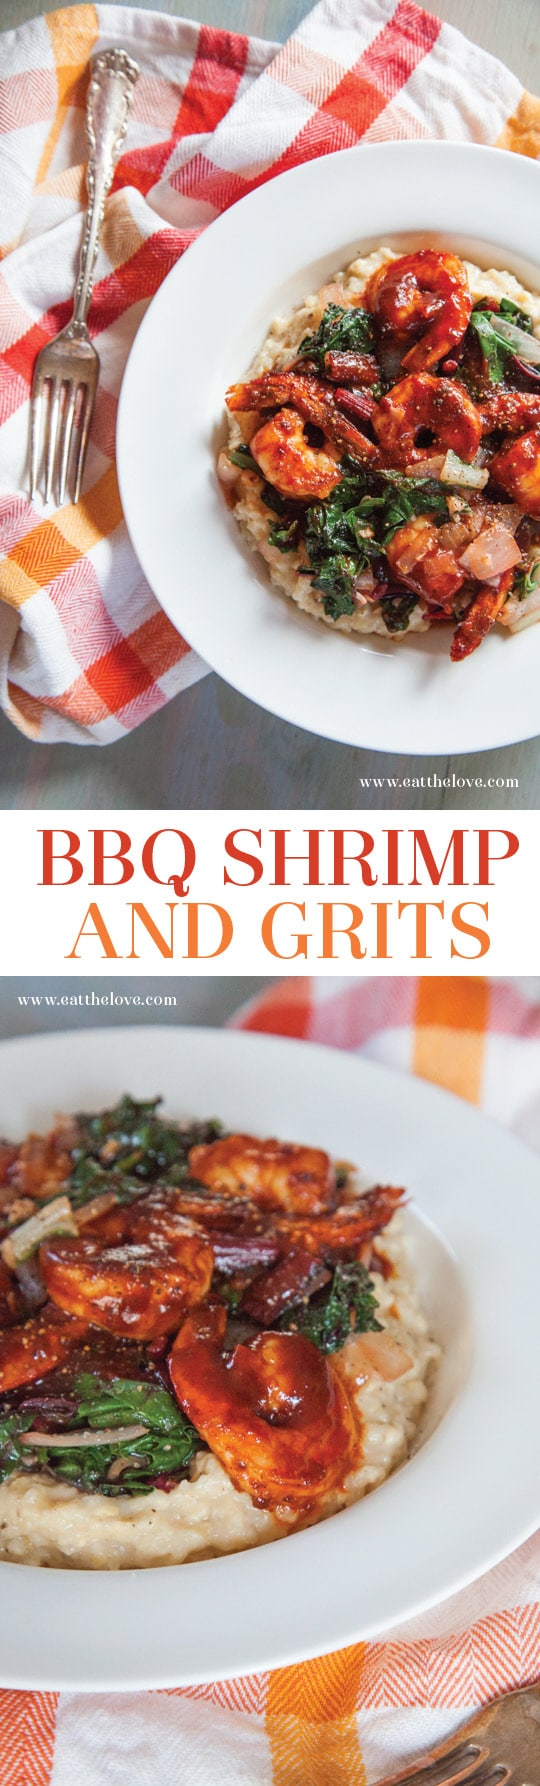 BBQ Shrimp and Grits. By Irvin Lin of Eat the Love.